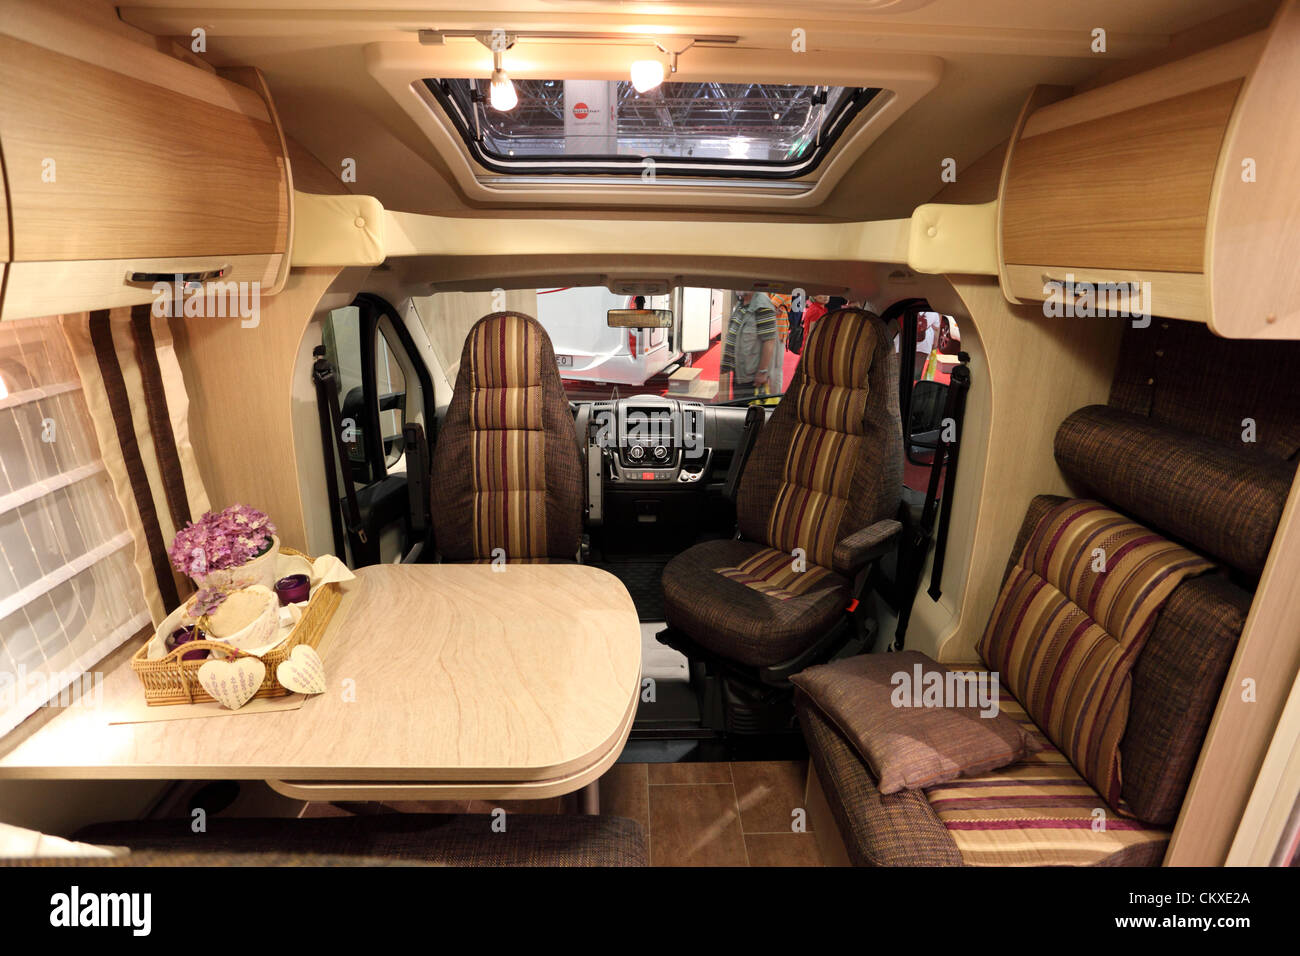 August 27 2012 In Dusseldorf Germany Interior Of A Modern Camper Van At